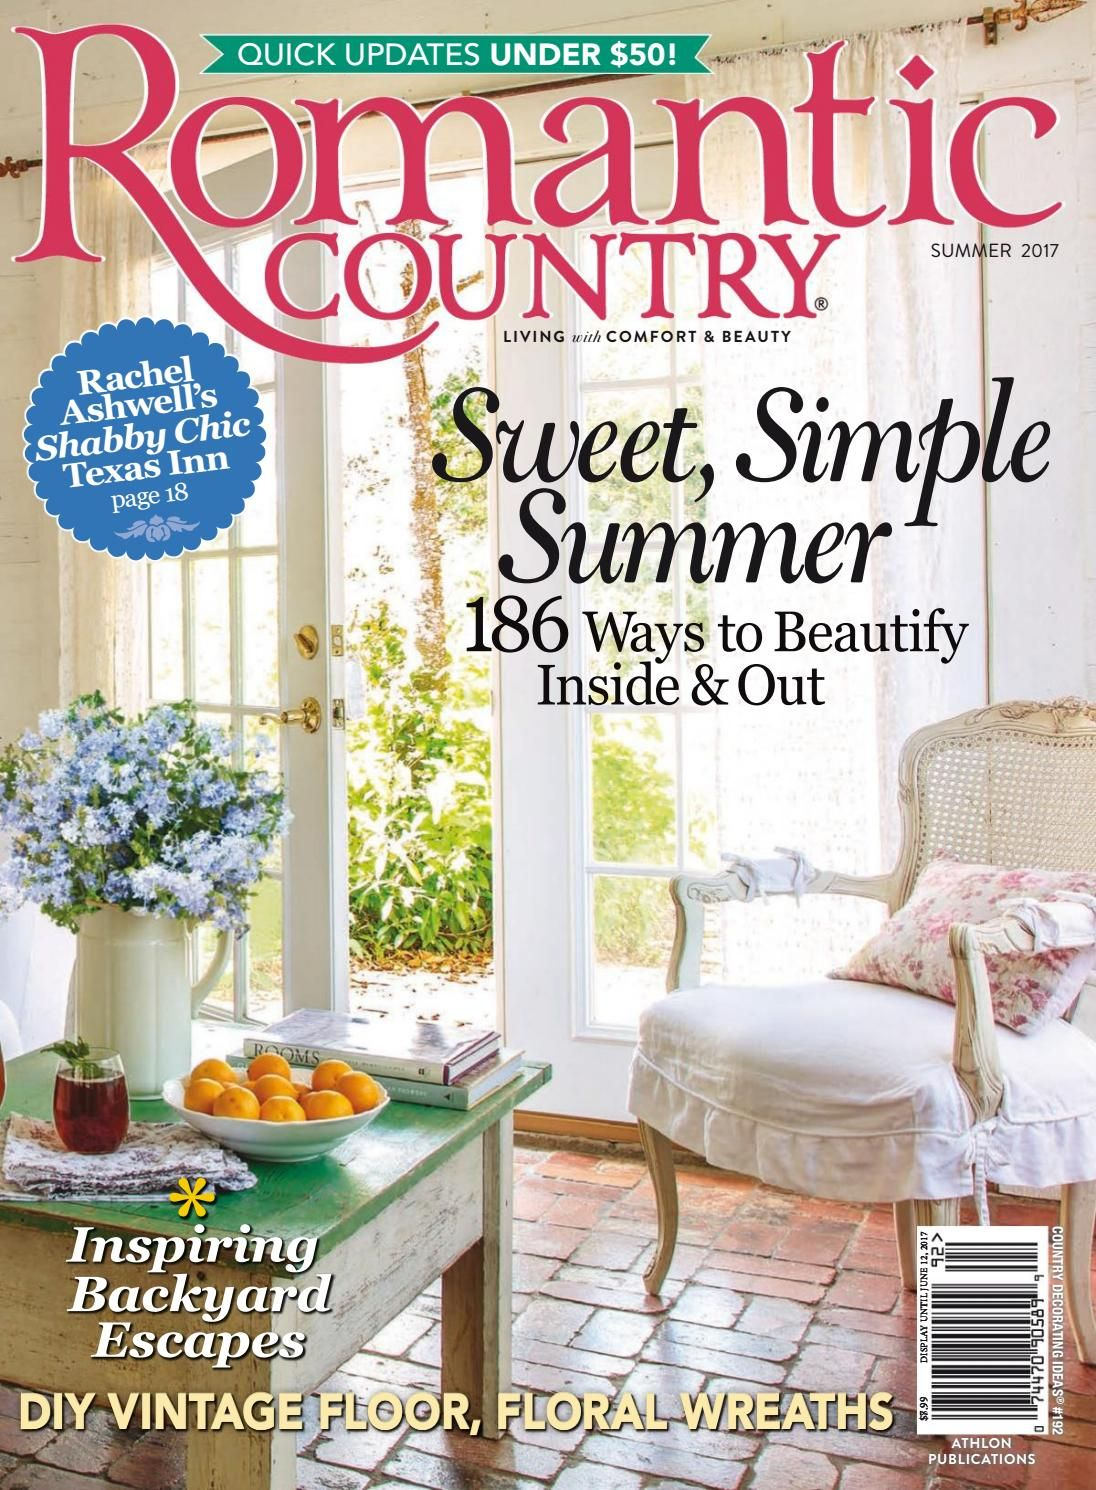 Romantic Country Summer 2017 Romantic Country Country Chic Cottage Country Magazine